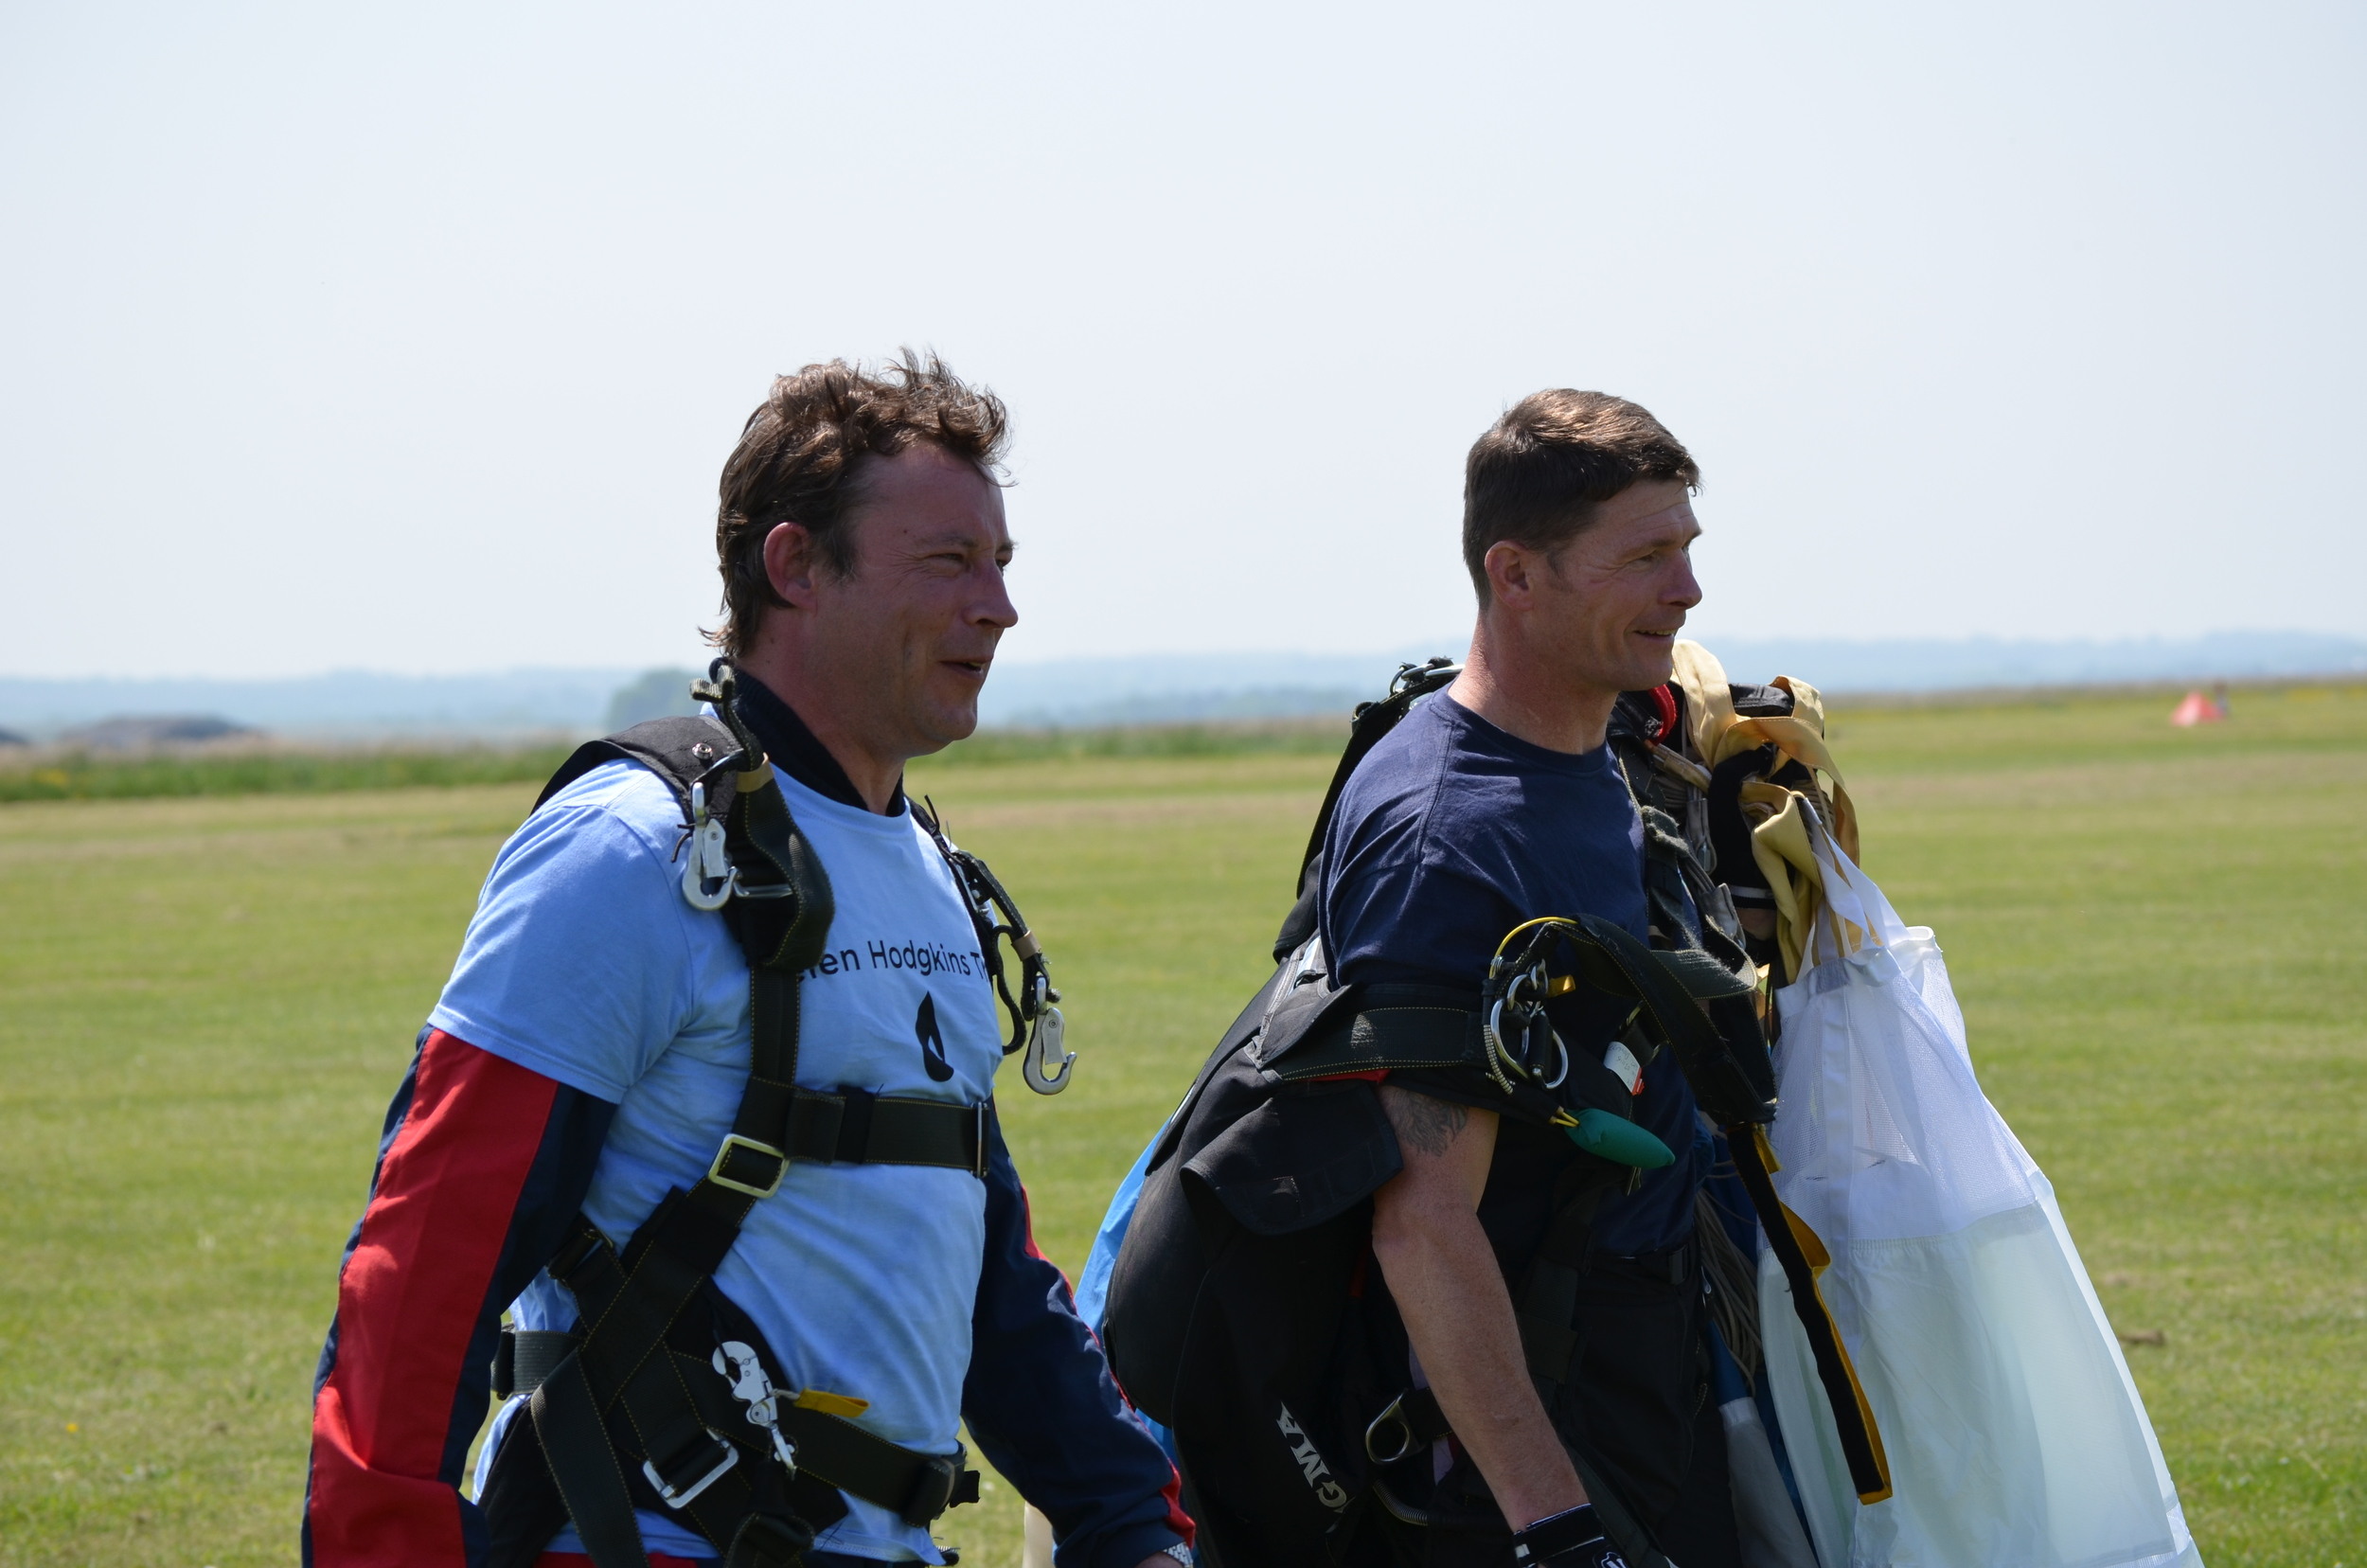 From pure fear to excitement - in 13,000ft